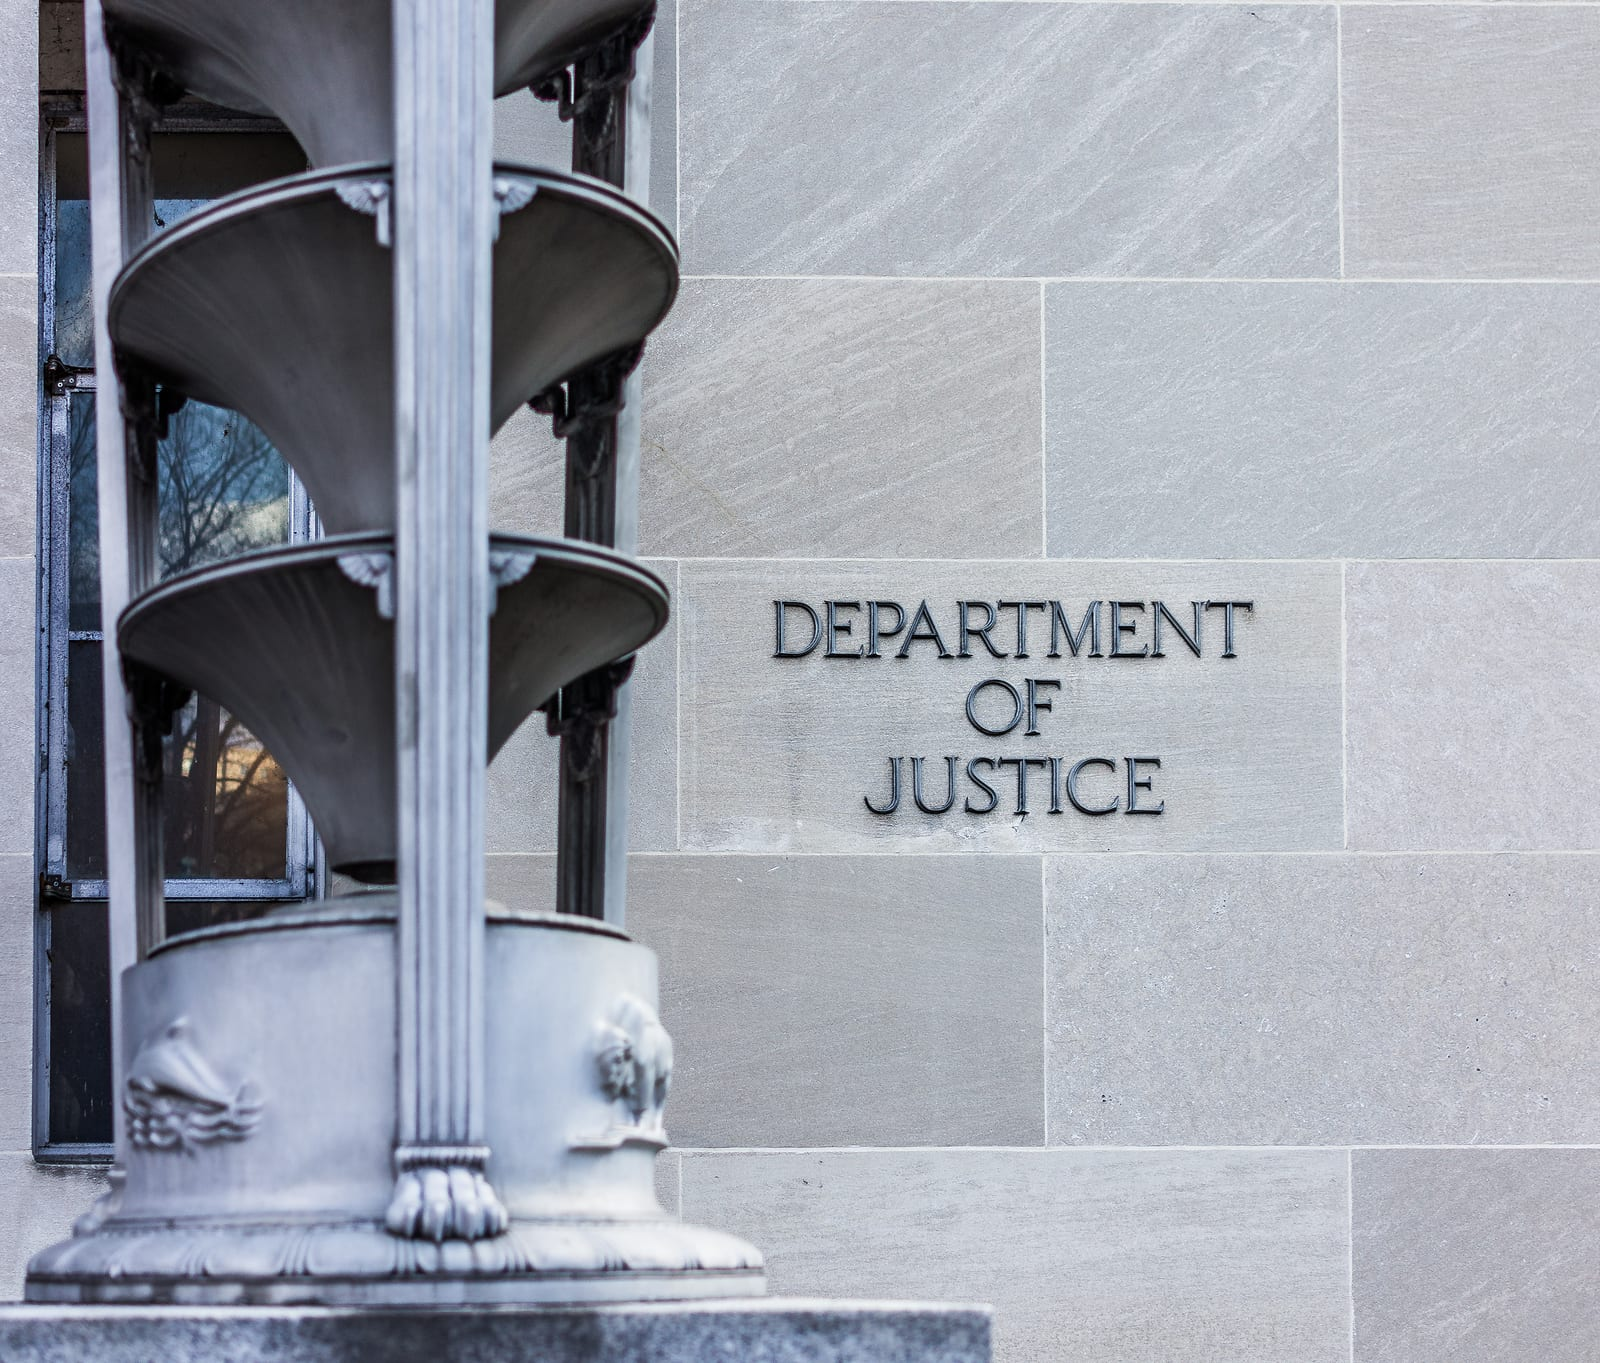 South Carolina News: Foreign Service Officer, Tiffany Thomas Pleads Guilty to Submitting False Claims to the Department of State